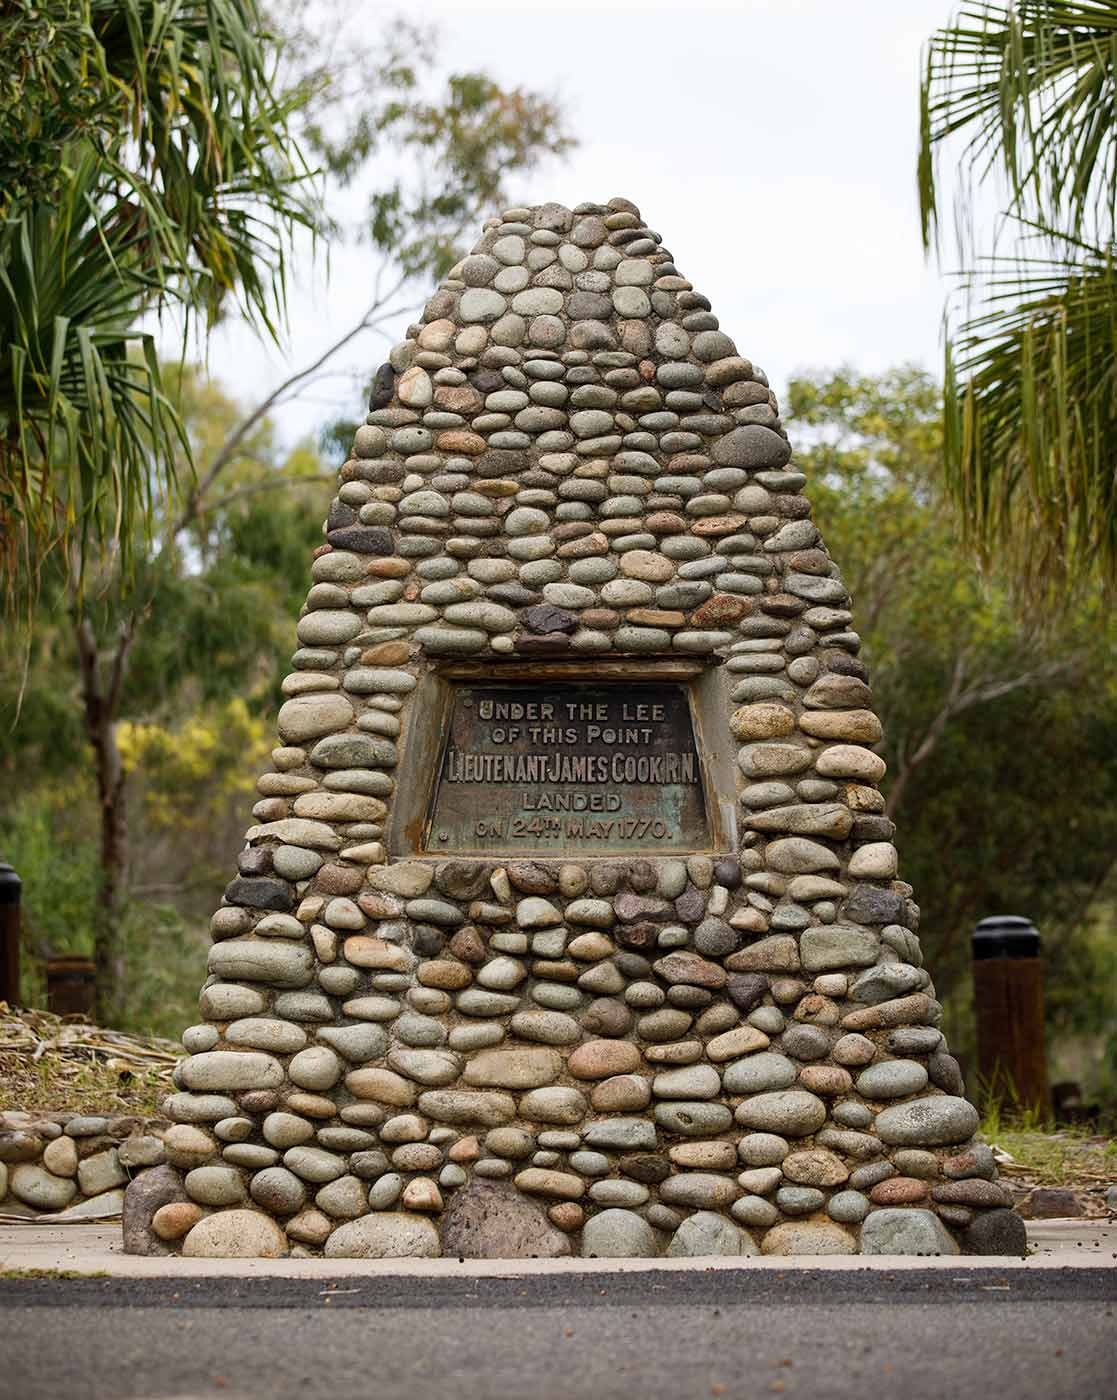 """Colour photo of a stone memorial with a plaque set in the stone that reads """"UNDER THE LEE OF THIS POINT. LIEUTENANT JAMES COOK, R.N. LANDED ON 24TH OF MAY 1770."""" - click to view larger image"""